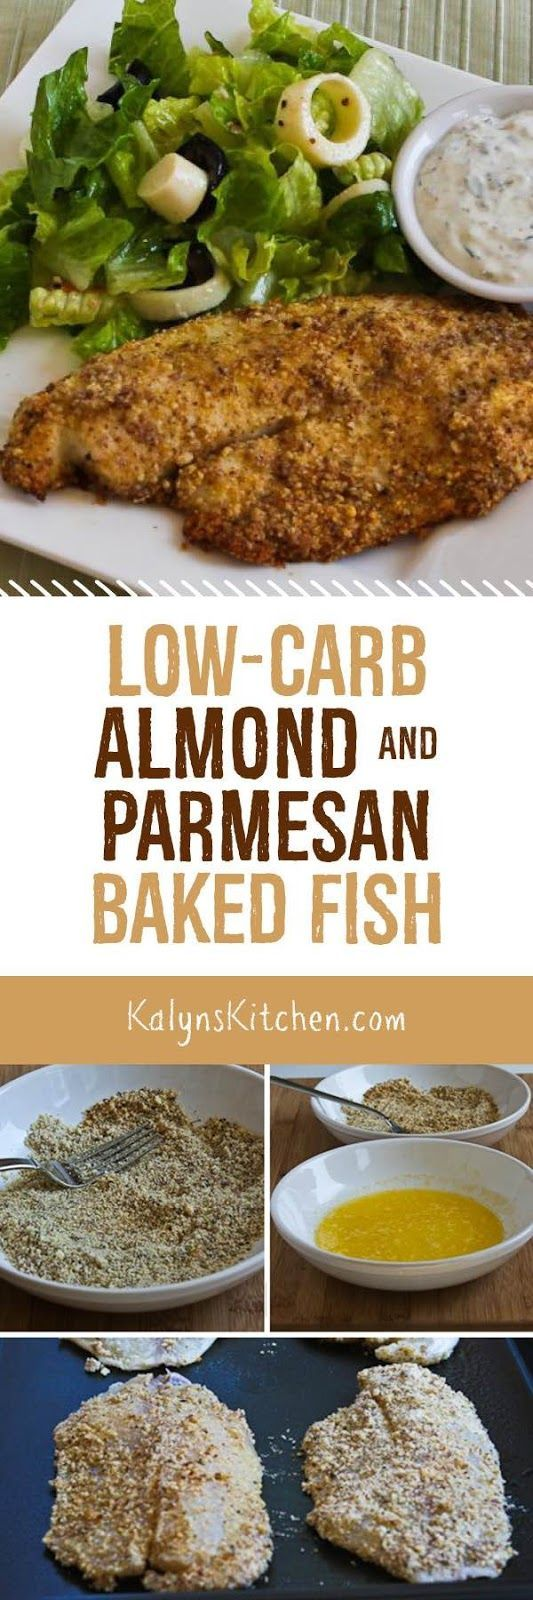 Low Carb Almond And Parmesan Baked Fish